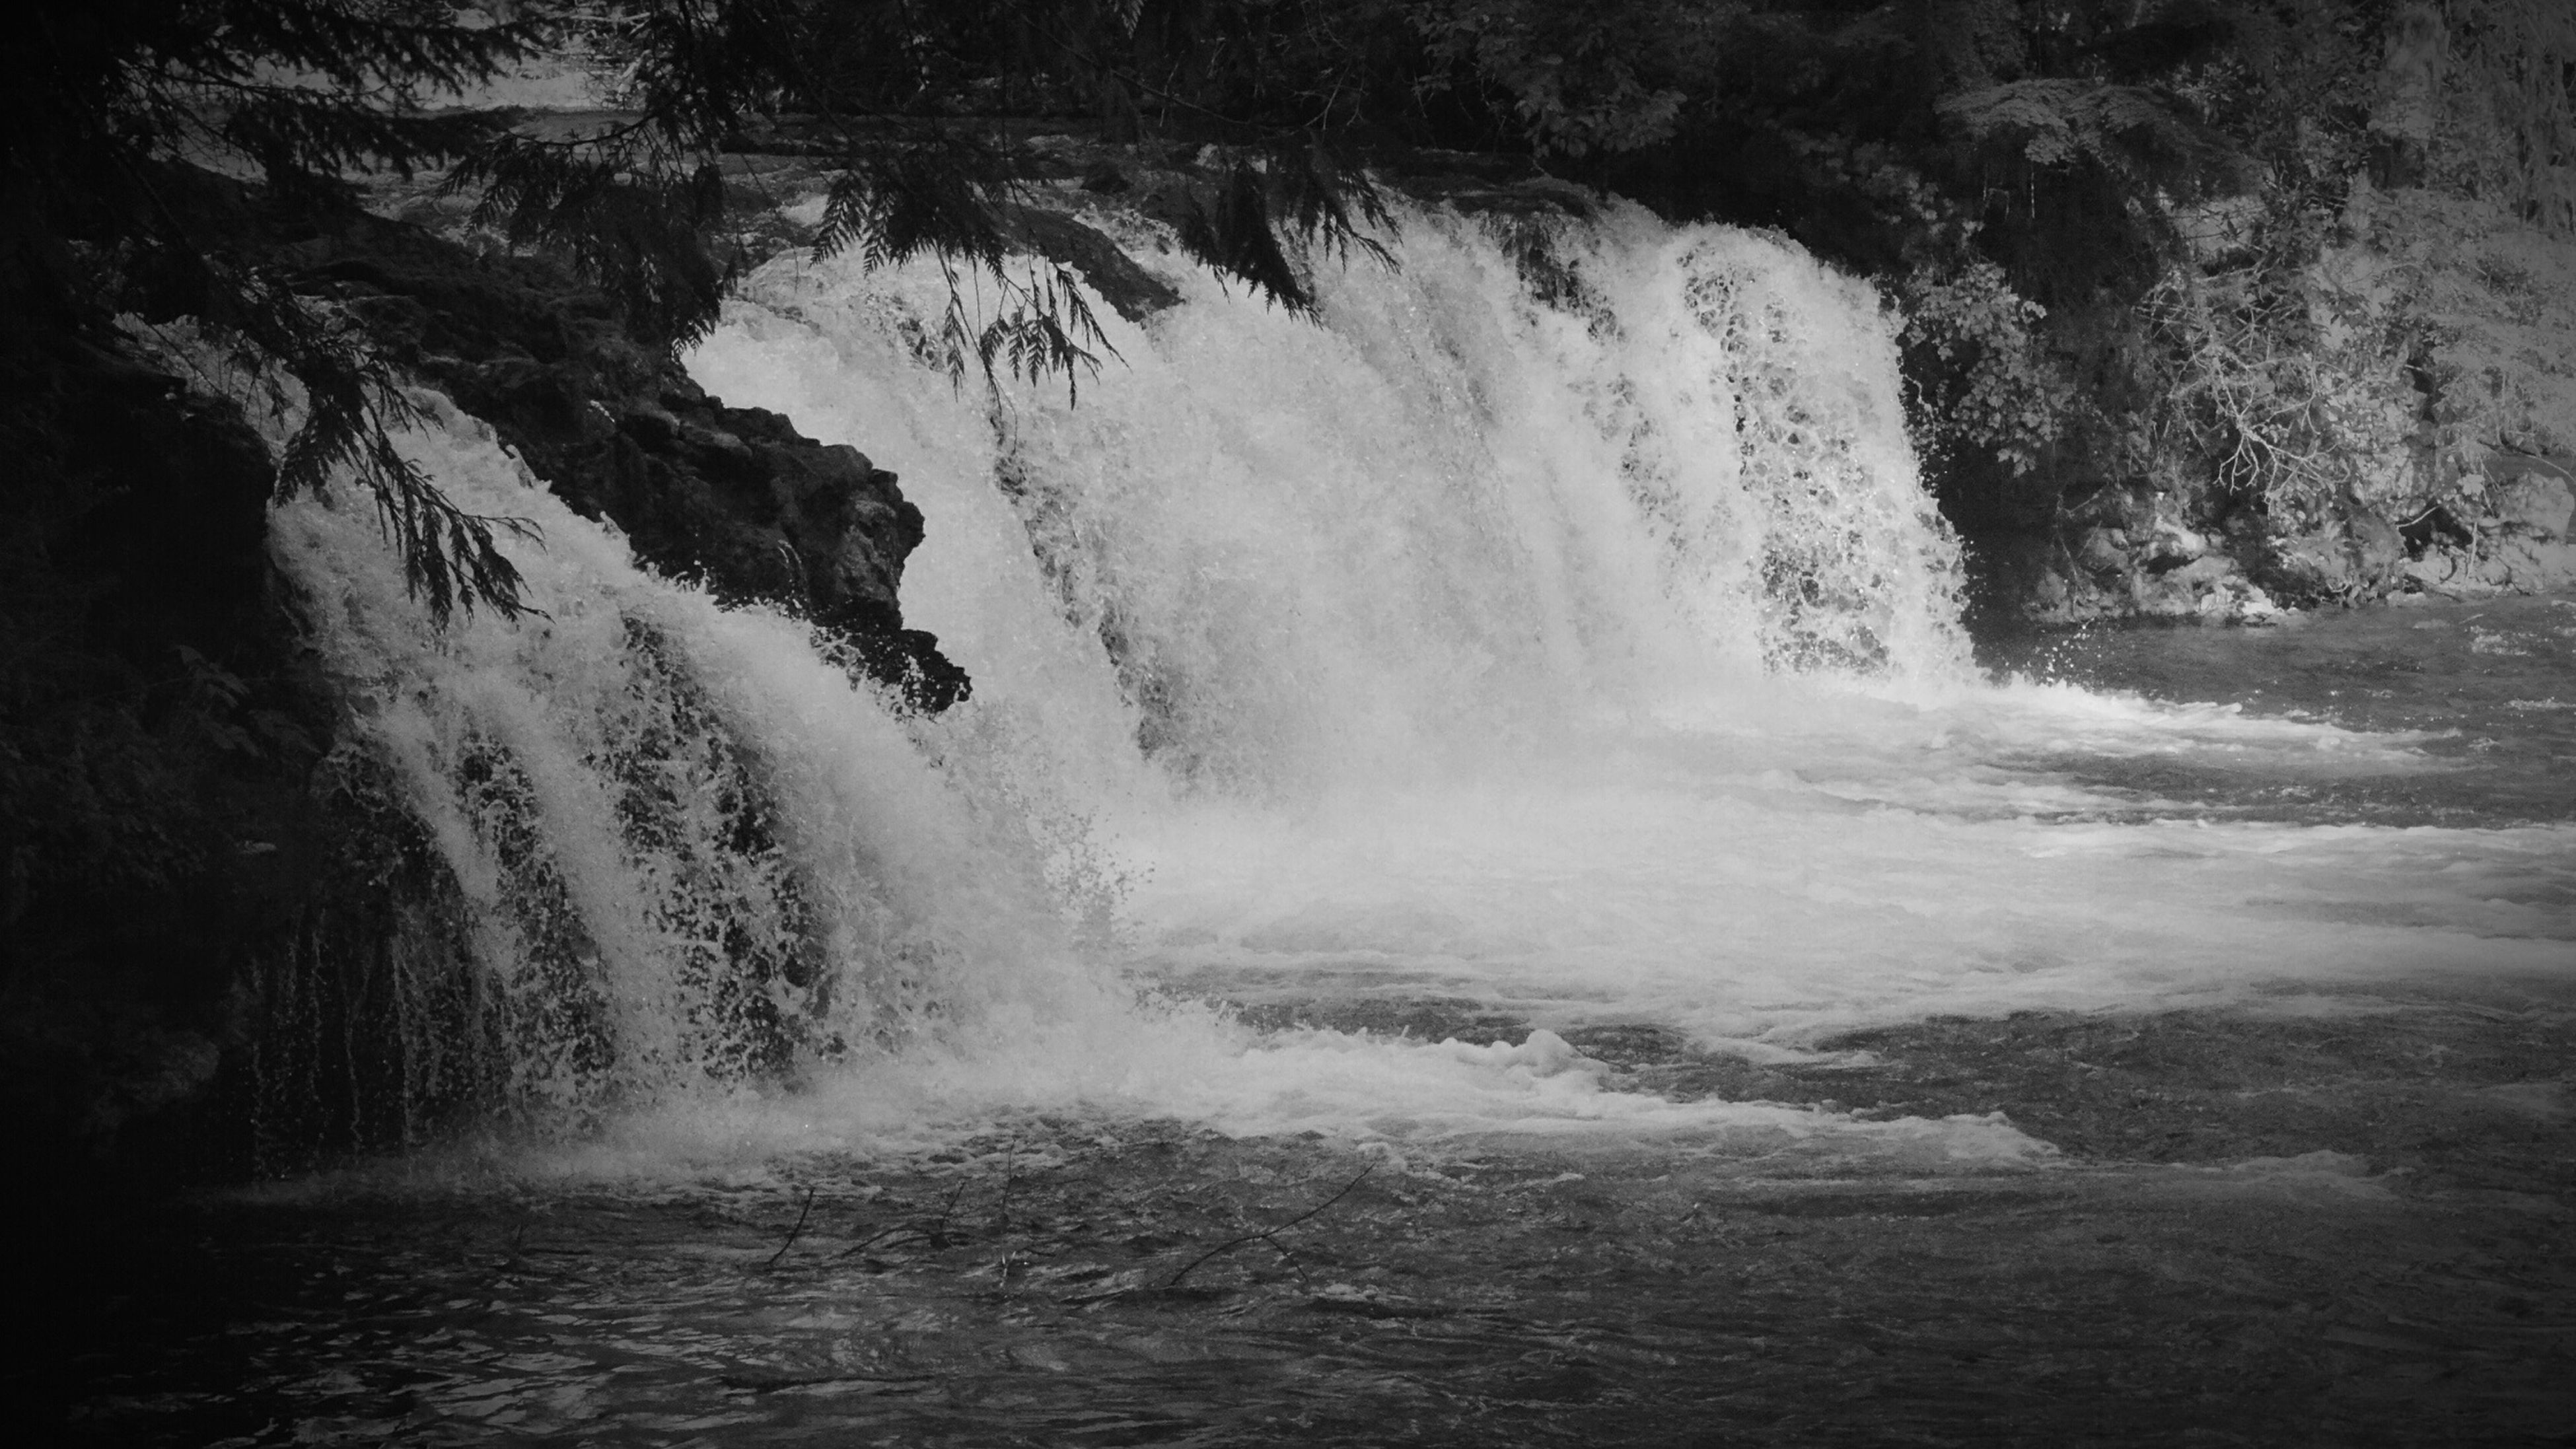 motion, water, waterfront, nature, beauty in nature, power in nature, long exposure, no people, waterfall, splashing, outdoors, scenics, day, force, spraying, crash, wave